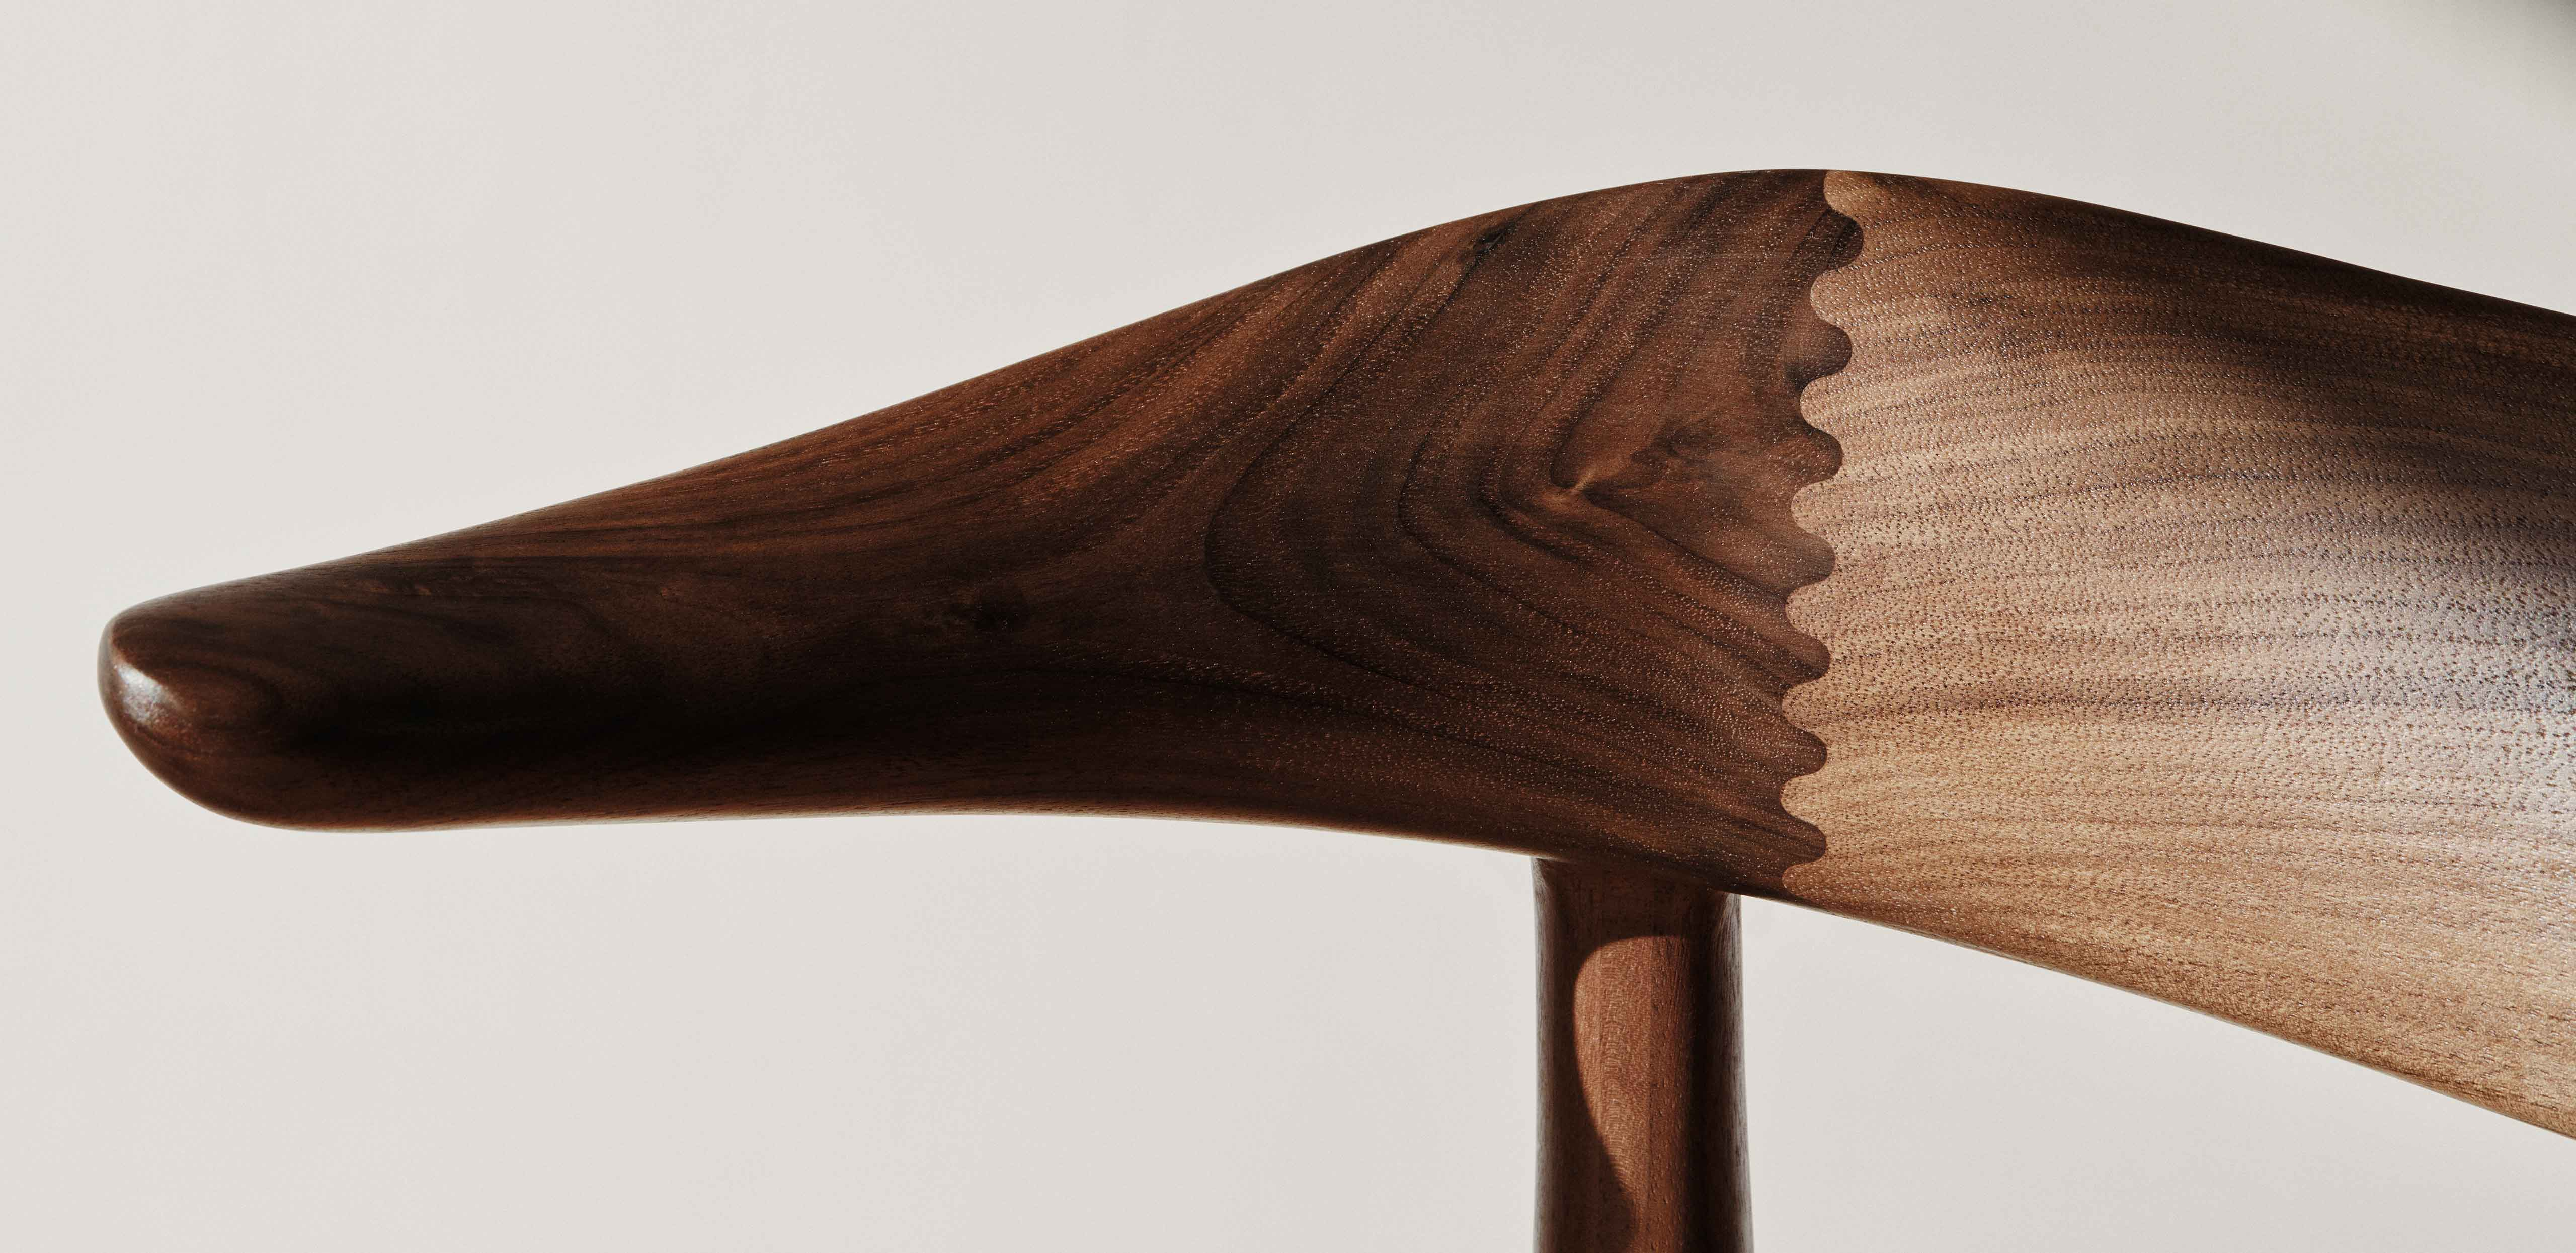 Cow Horn dining chair details